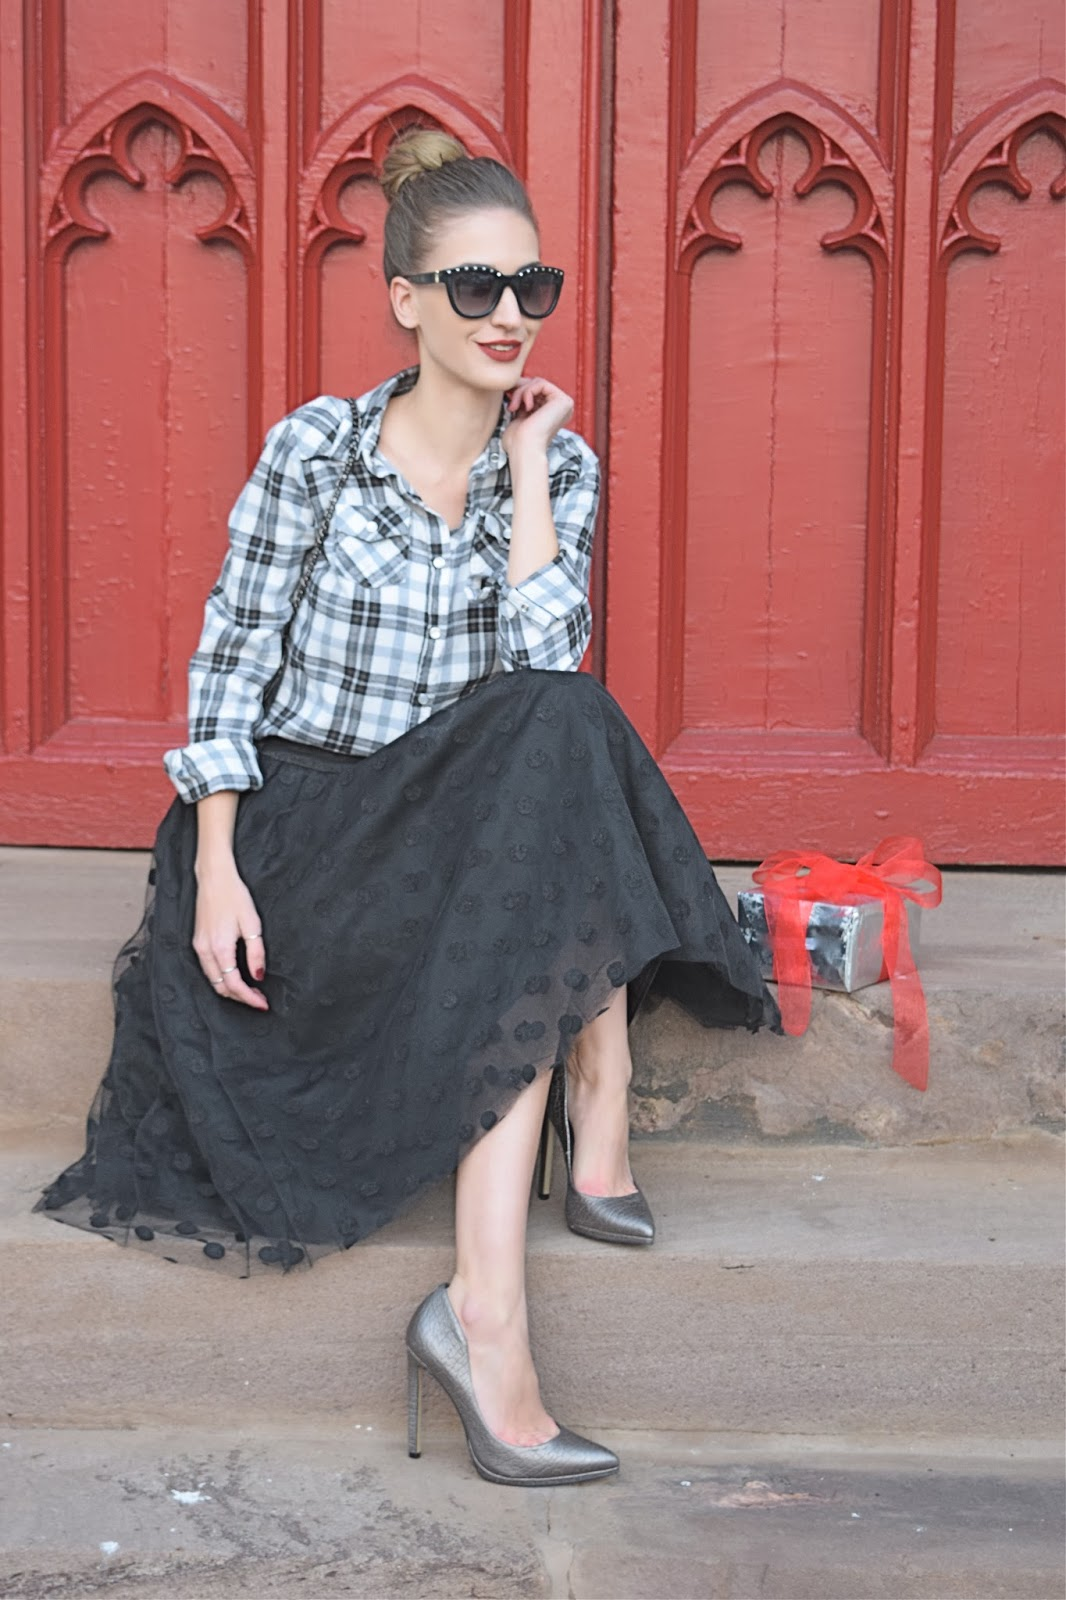 Wearing Dainty Jewell's Black Polka Dotted Tutu, Holiday Look 2015, Fashion Blogger Holiday Look